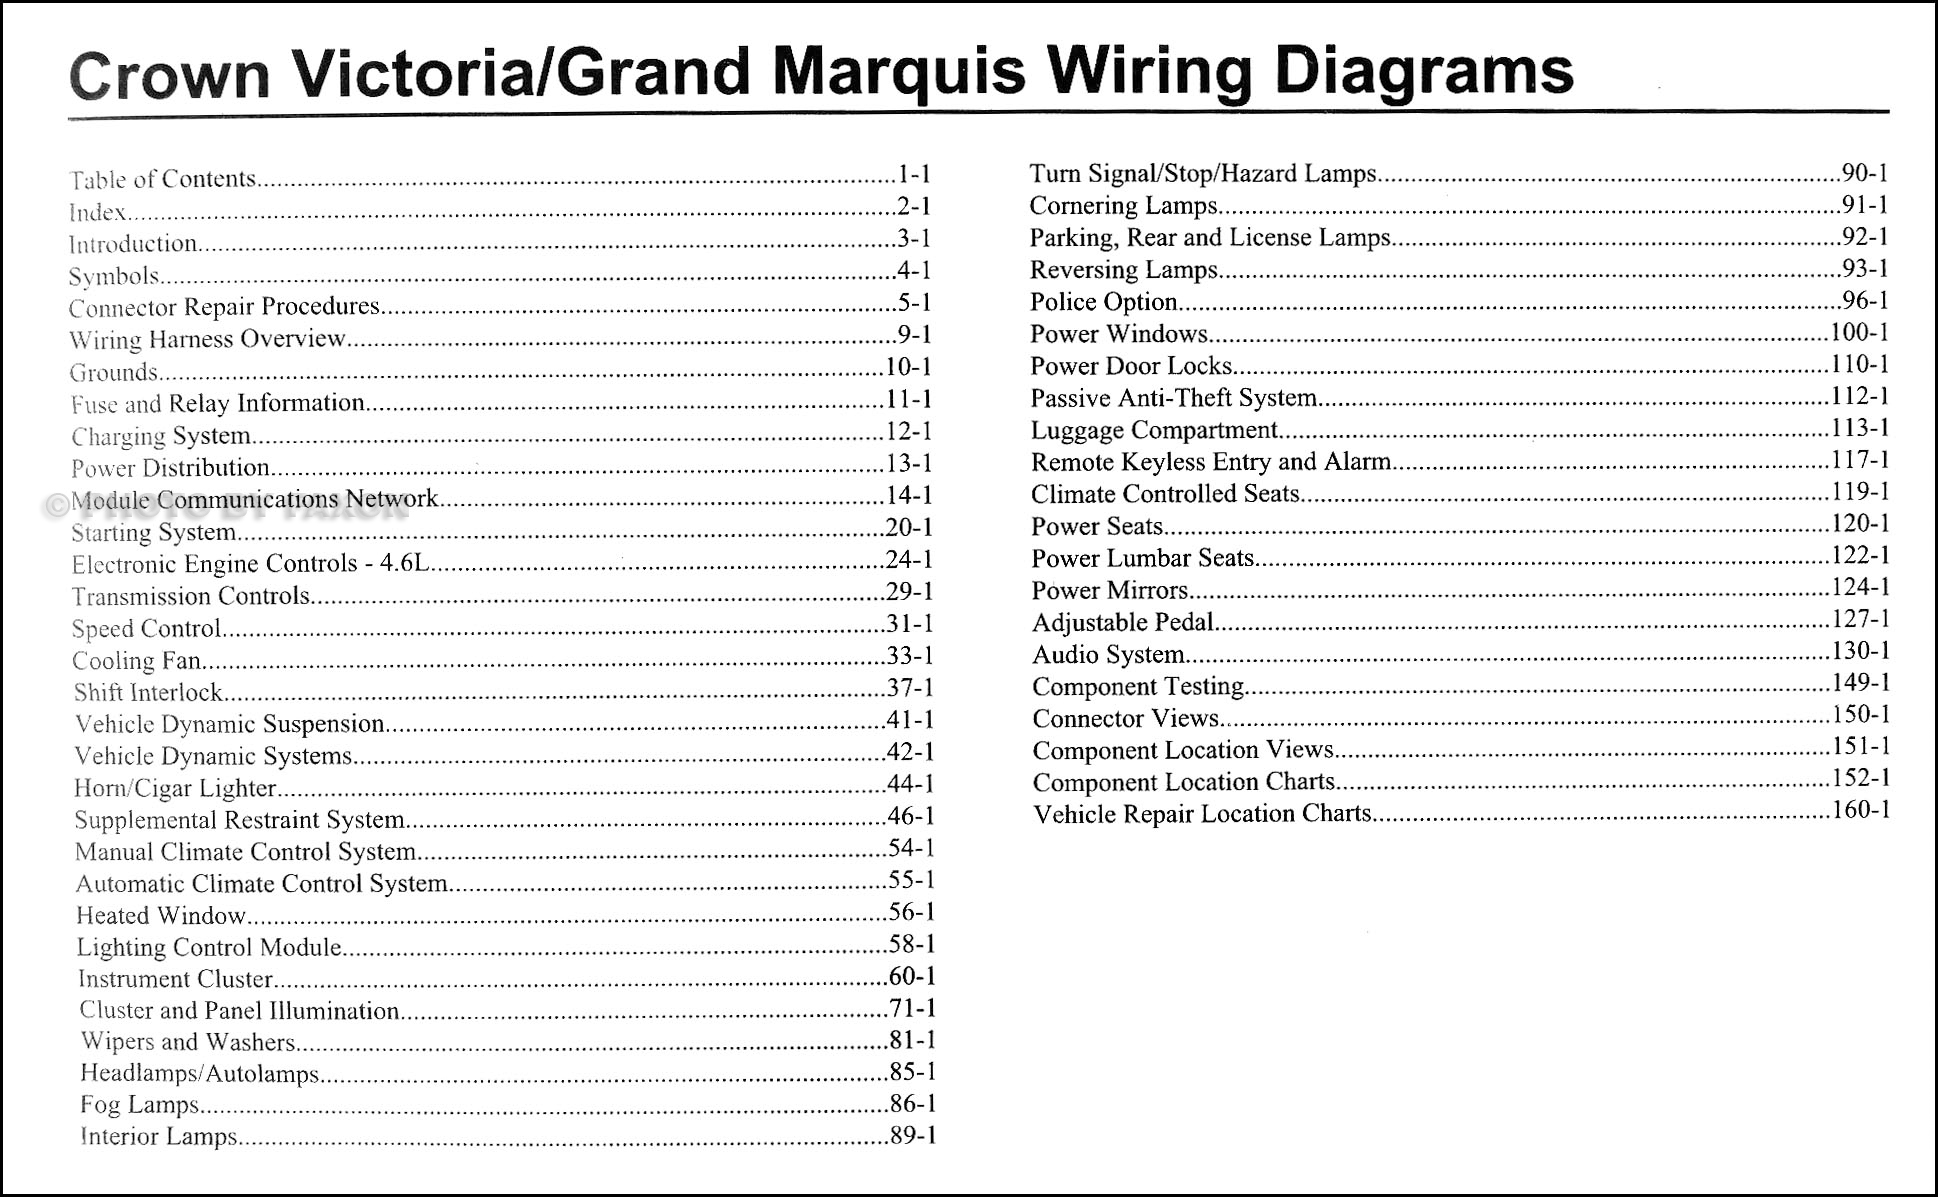 2009 crown victoria & grand marquis original wiring diagram manual 2000 grand marquis wiring diagram grand marquis original wiring diagram manual · table of contents